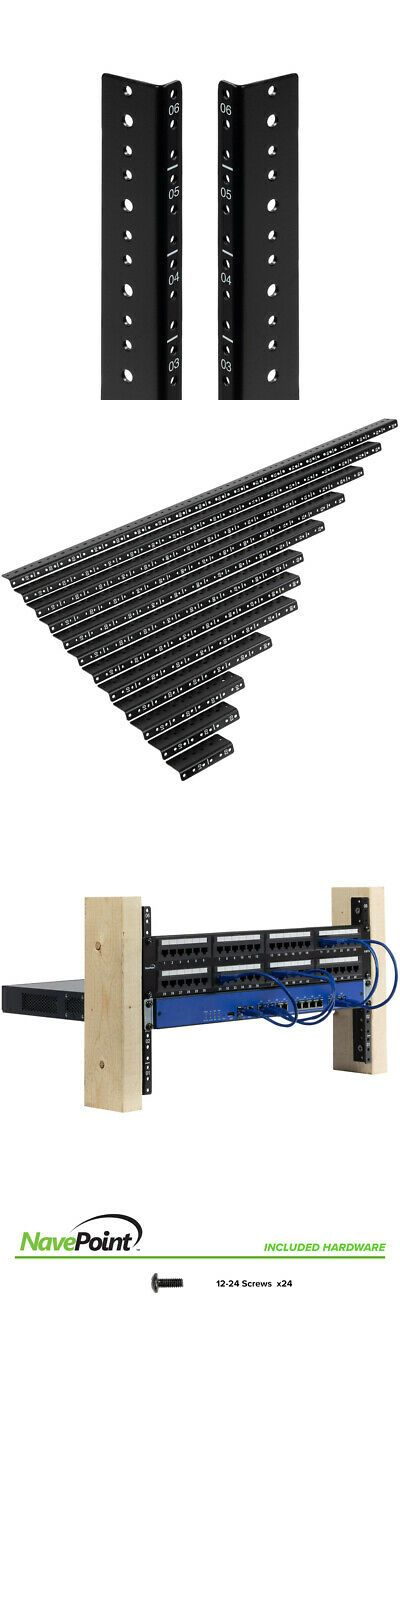 Racks Chassis And Patch Panels 51197 Navepoint 6u Vertical Rack Rail Pair Diy Kit With Hardware Buy It Now Only 14 95 On E Diy Kits Patch Panels Hardware